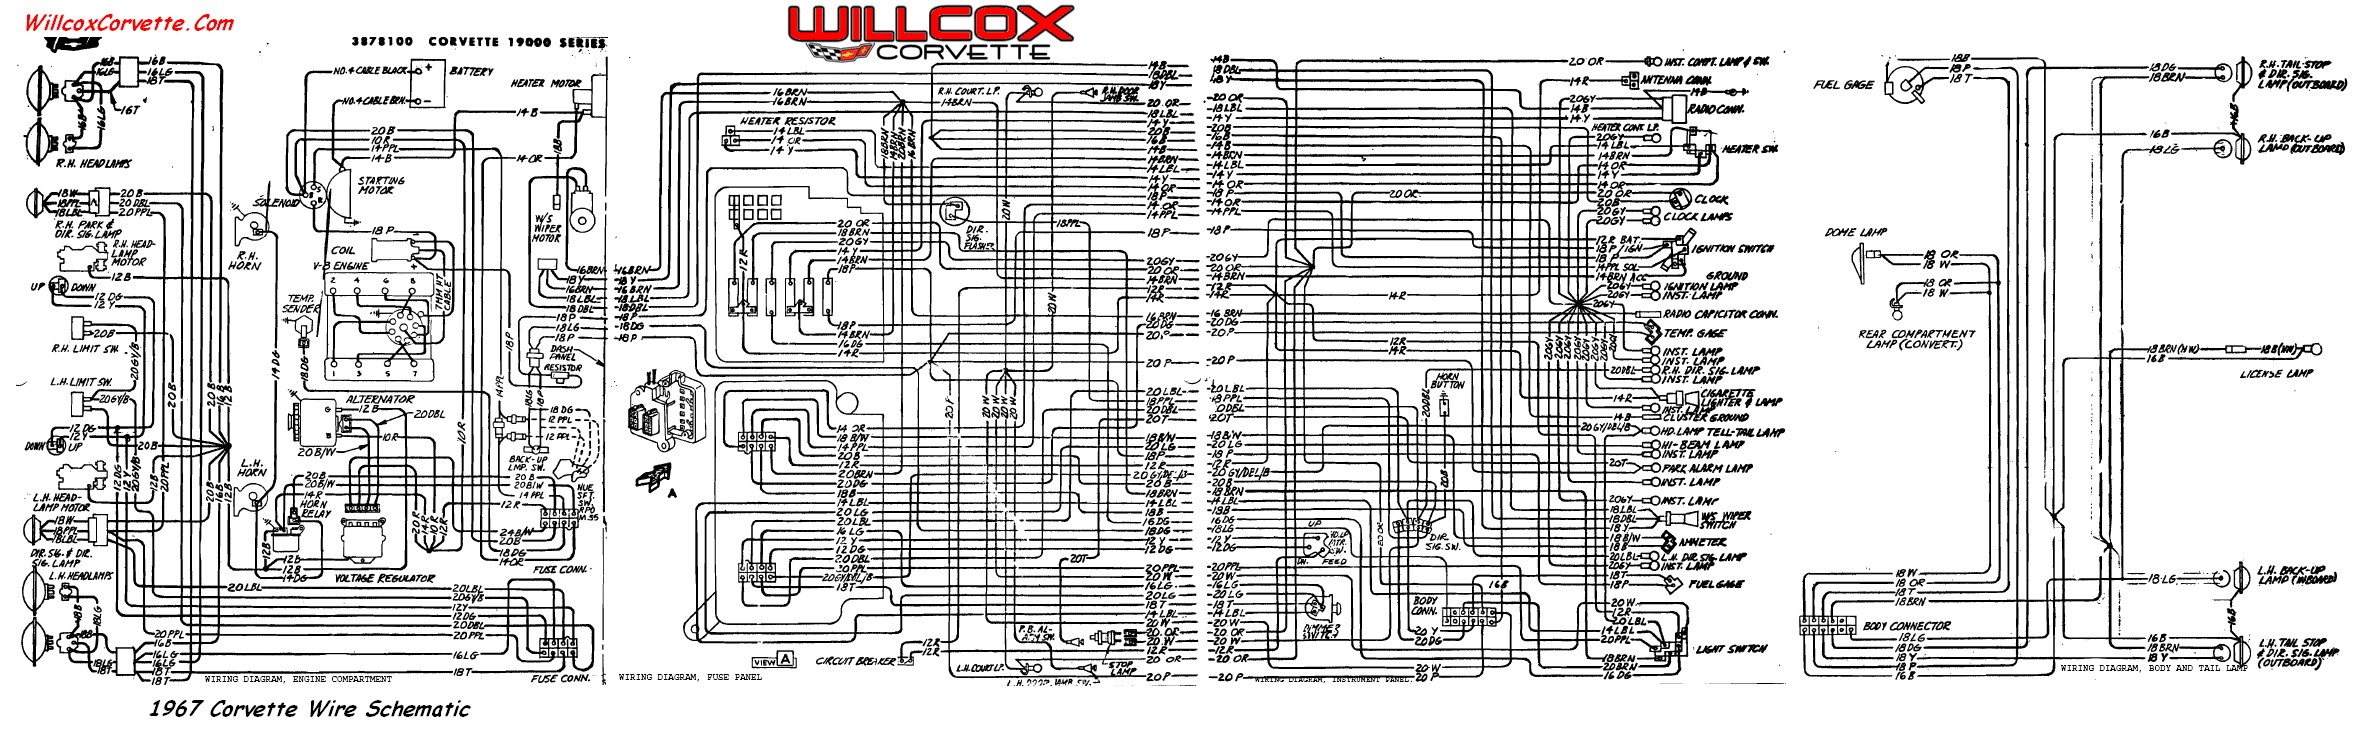 82 wiring diagram corvette parts wiring diagram fuse box u2022 rh friendsoffido co